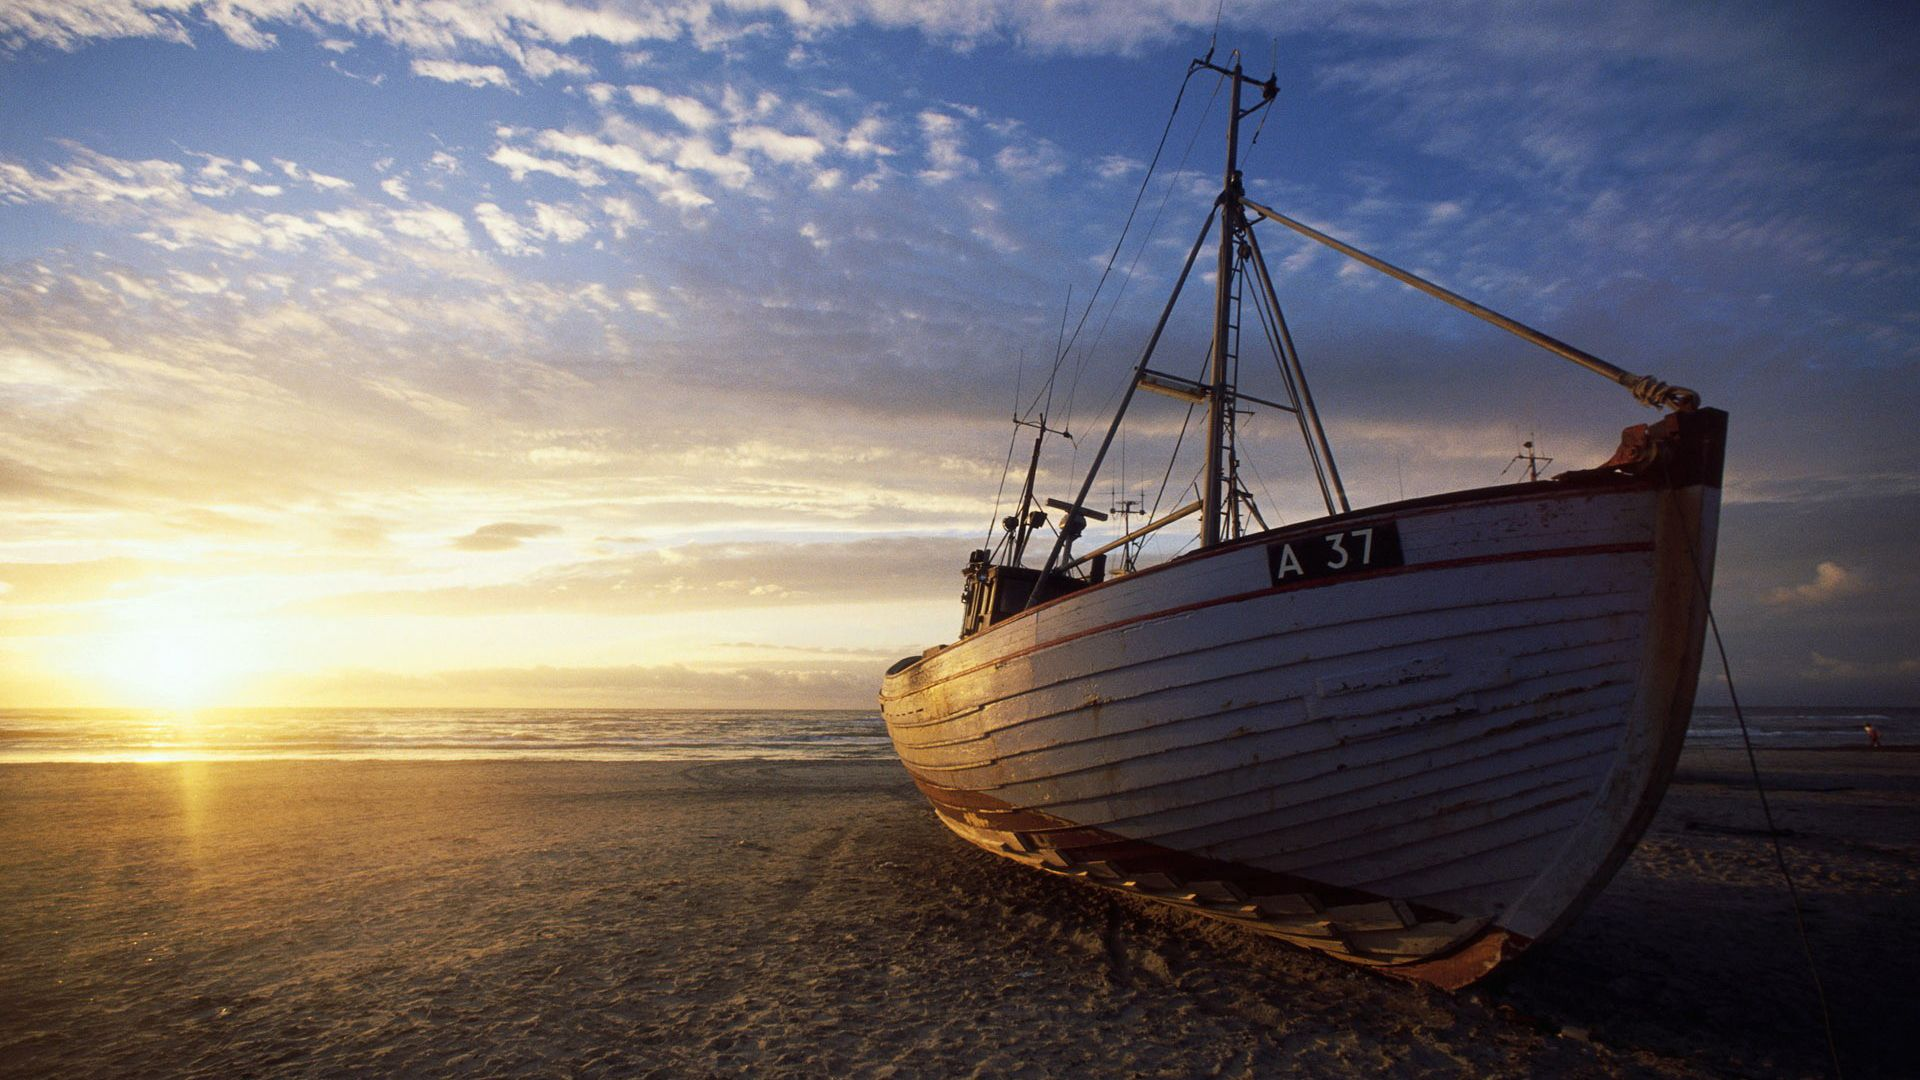 Boat on the dry HD Wallpaper FullHDWpp   Full HD 1920x1080